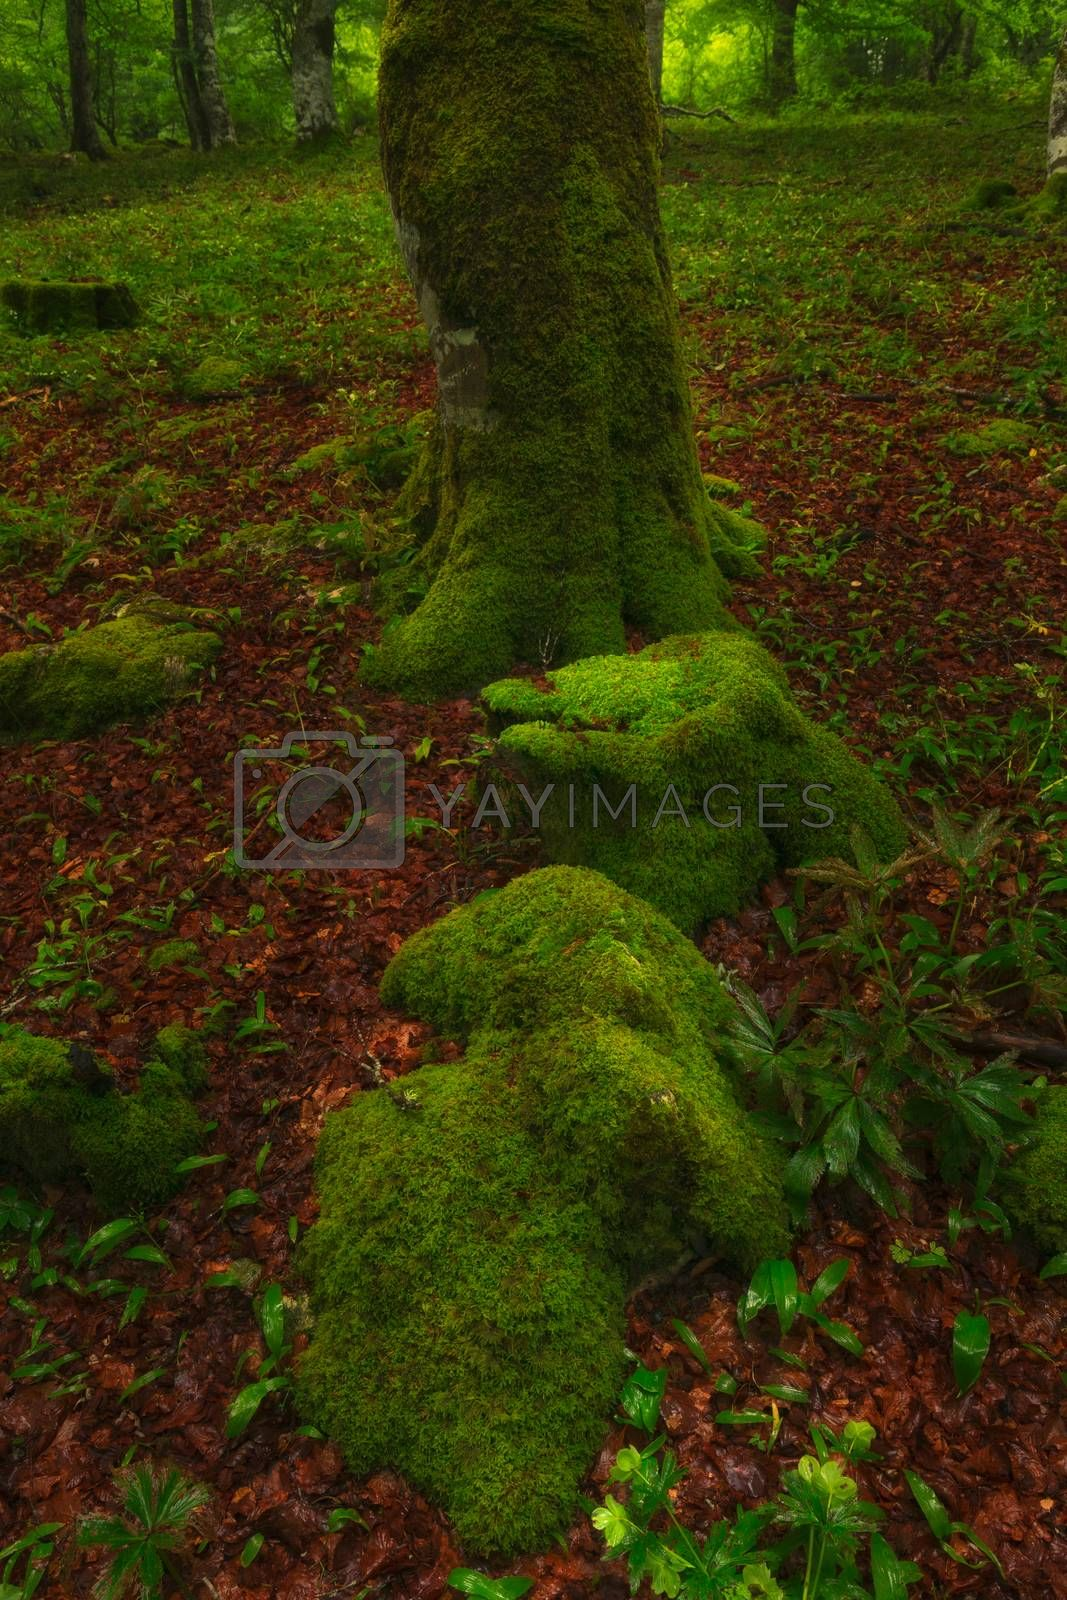 Green moss in the forest